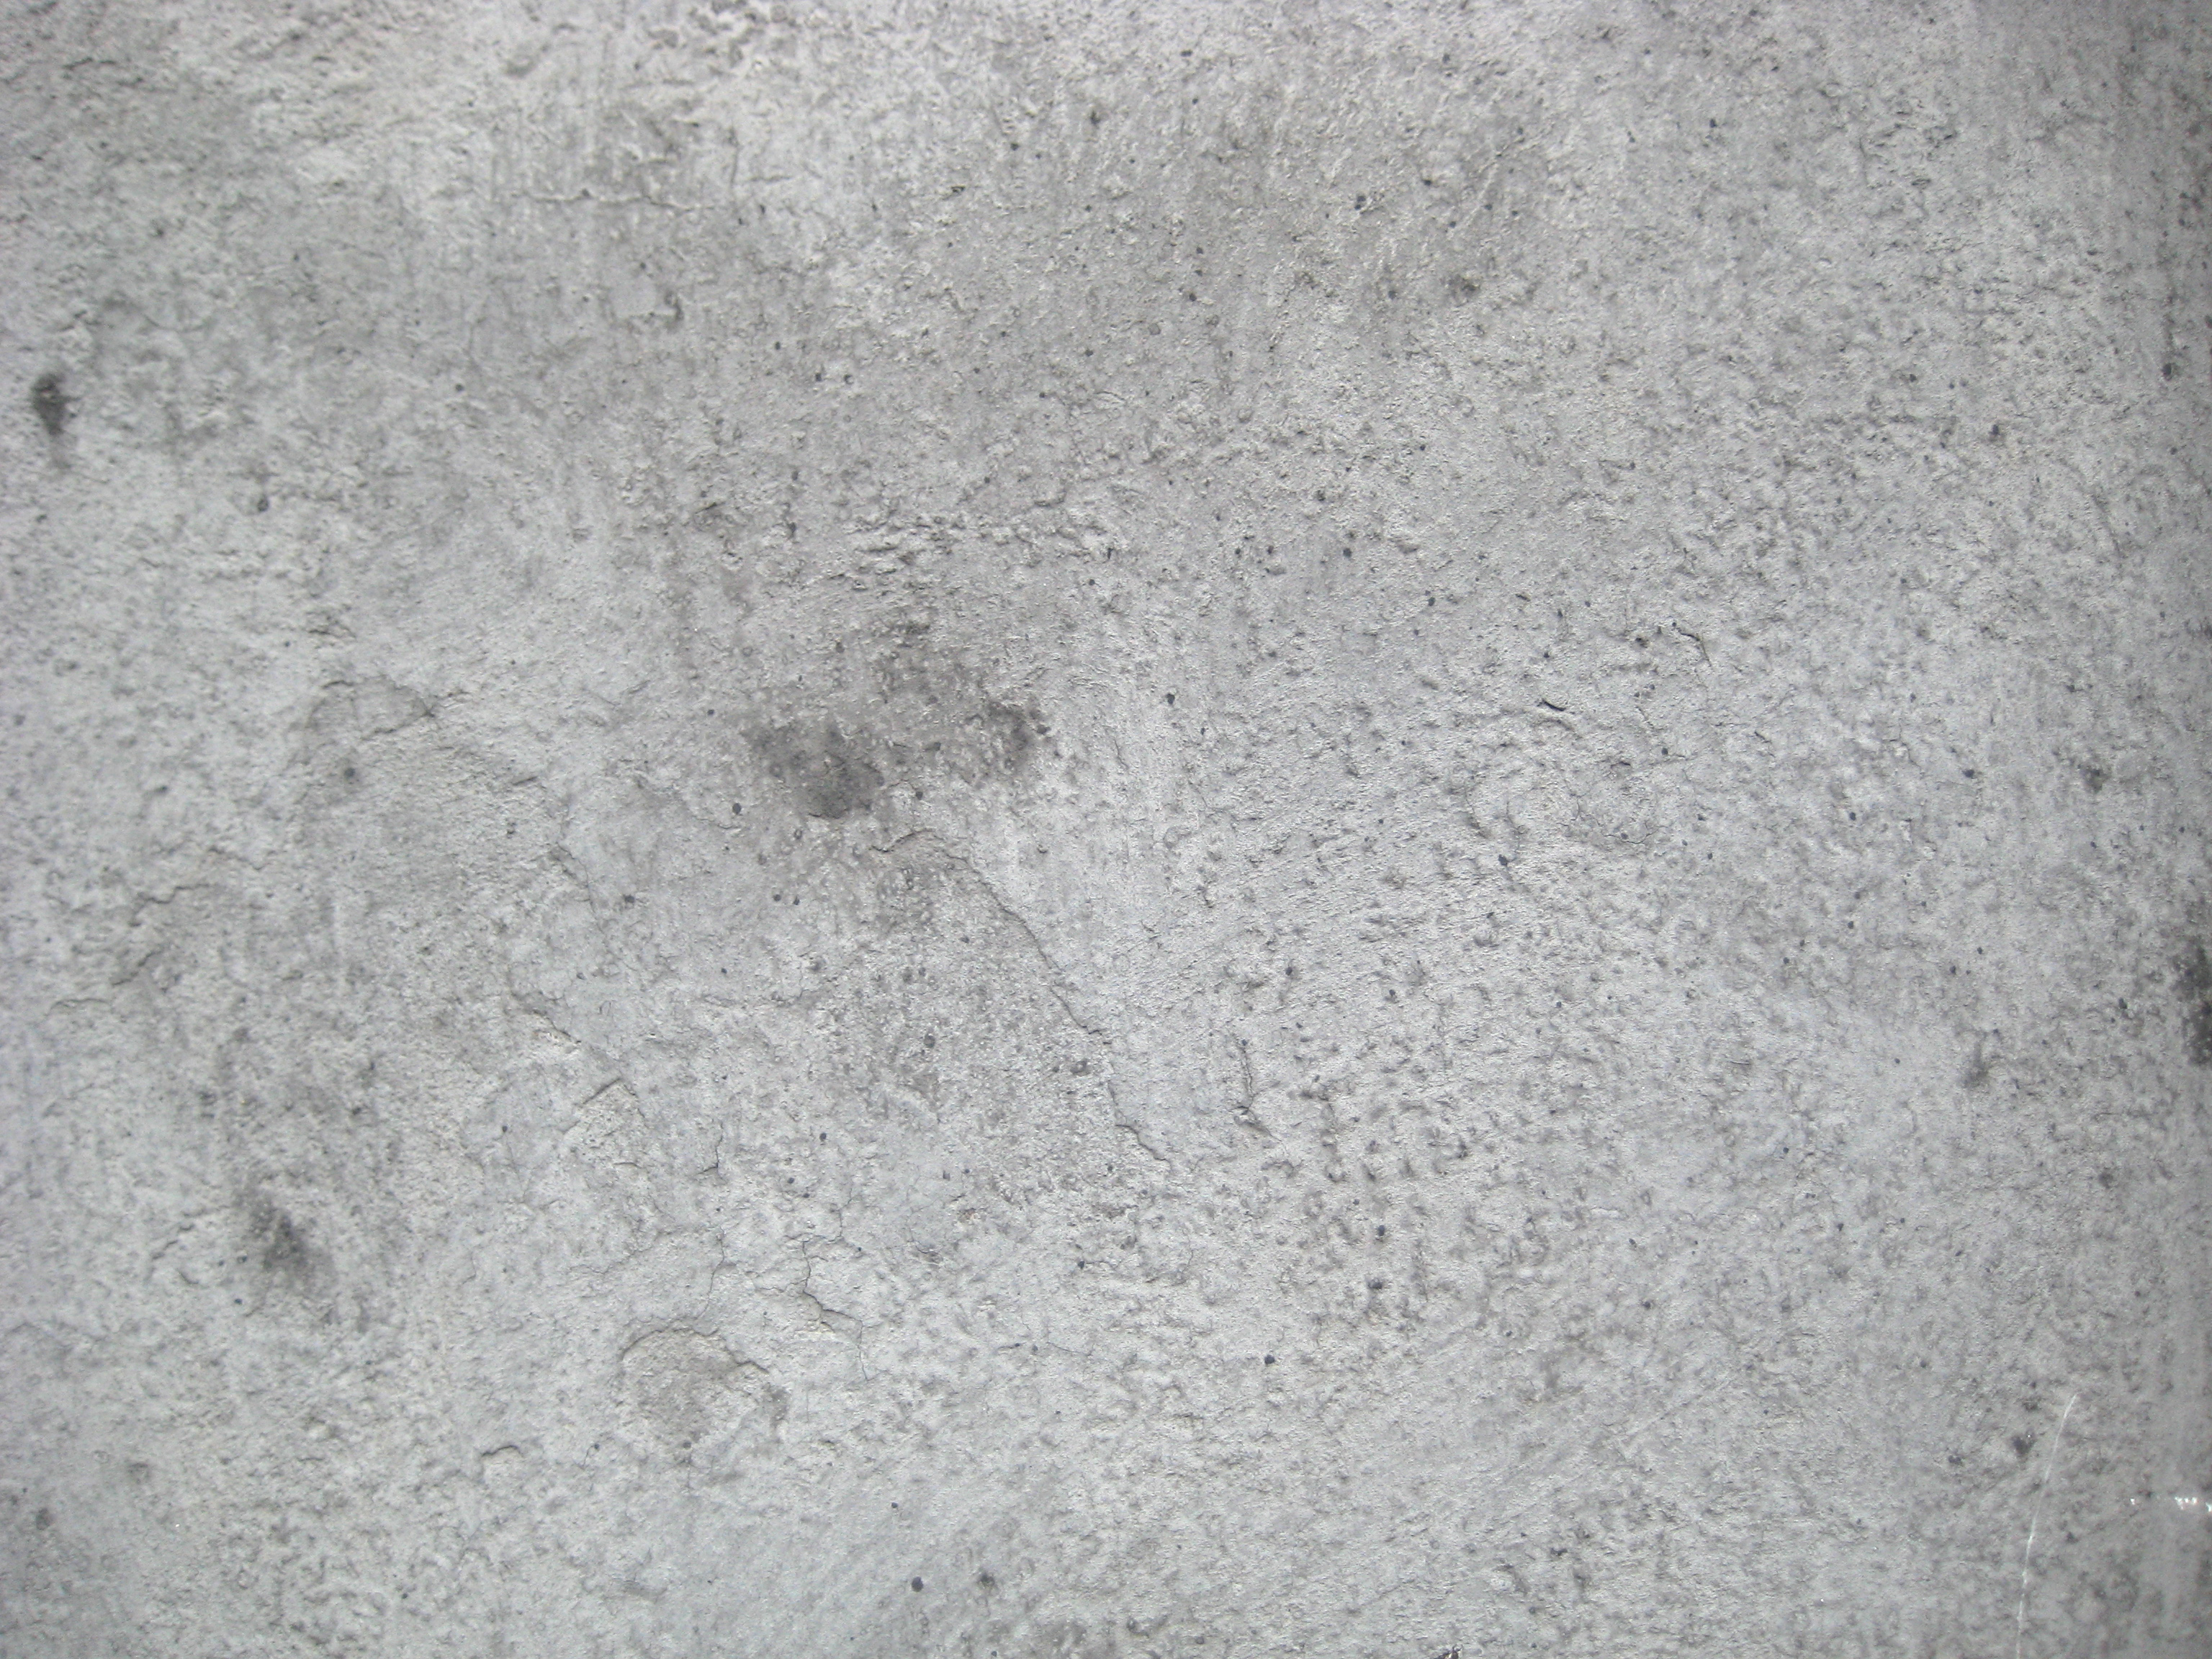 Smooth concrete texture photos urban dirty for Smooth concrete texture